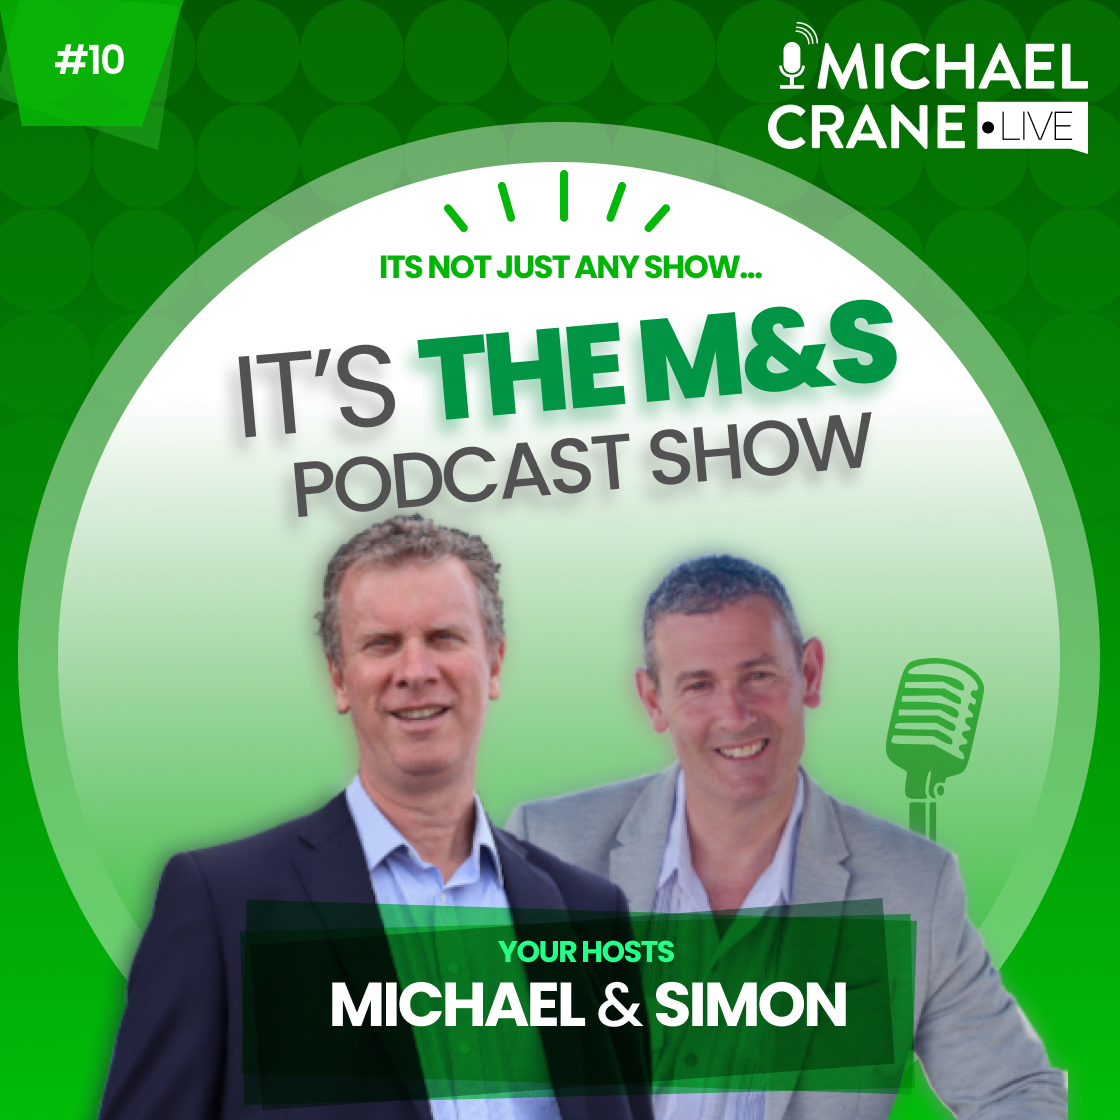 CYCLE OF PRODUCTIVITY RULES M&S MONTHLY PODCAST SHOW